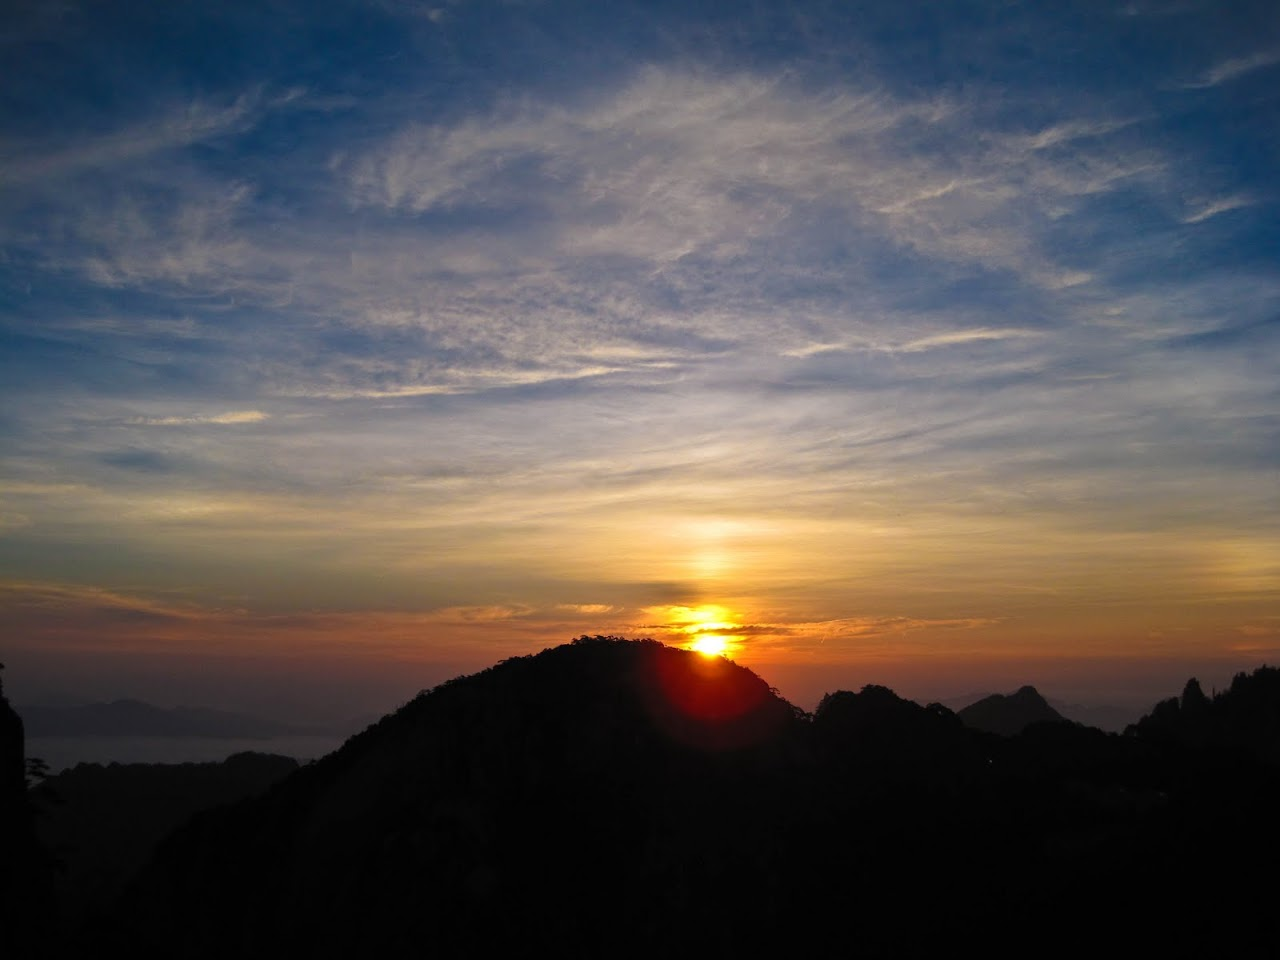 Sunrise in Huang Shan